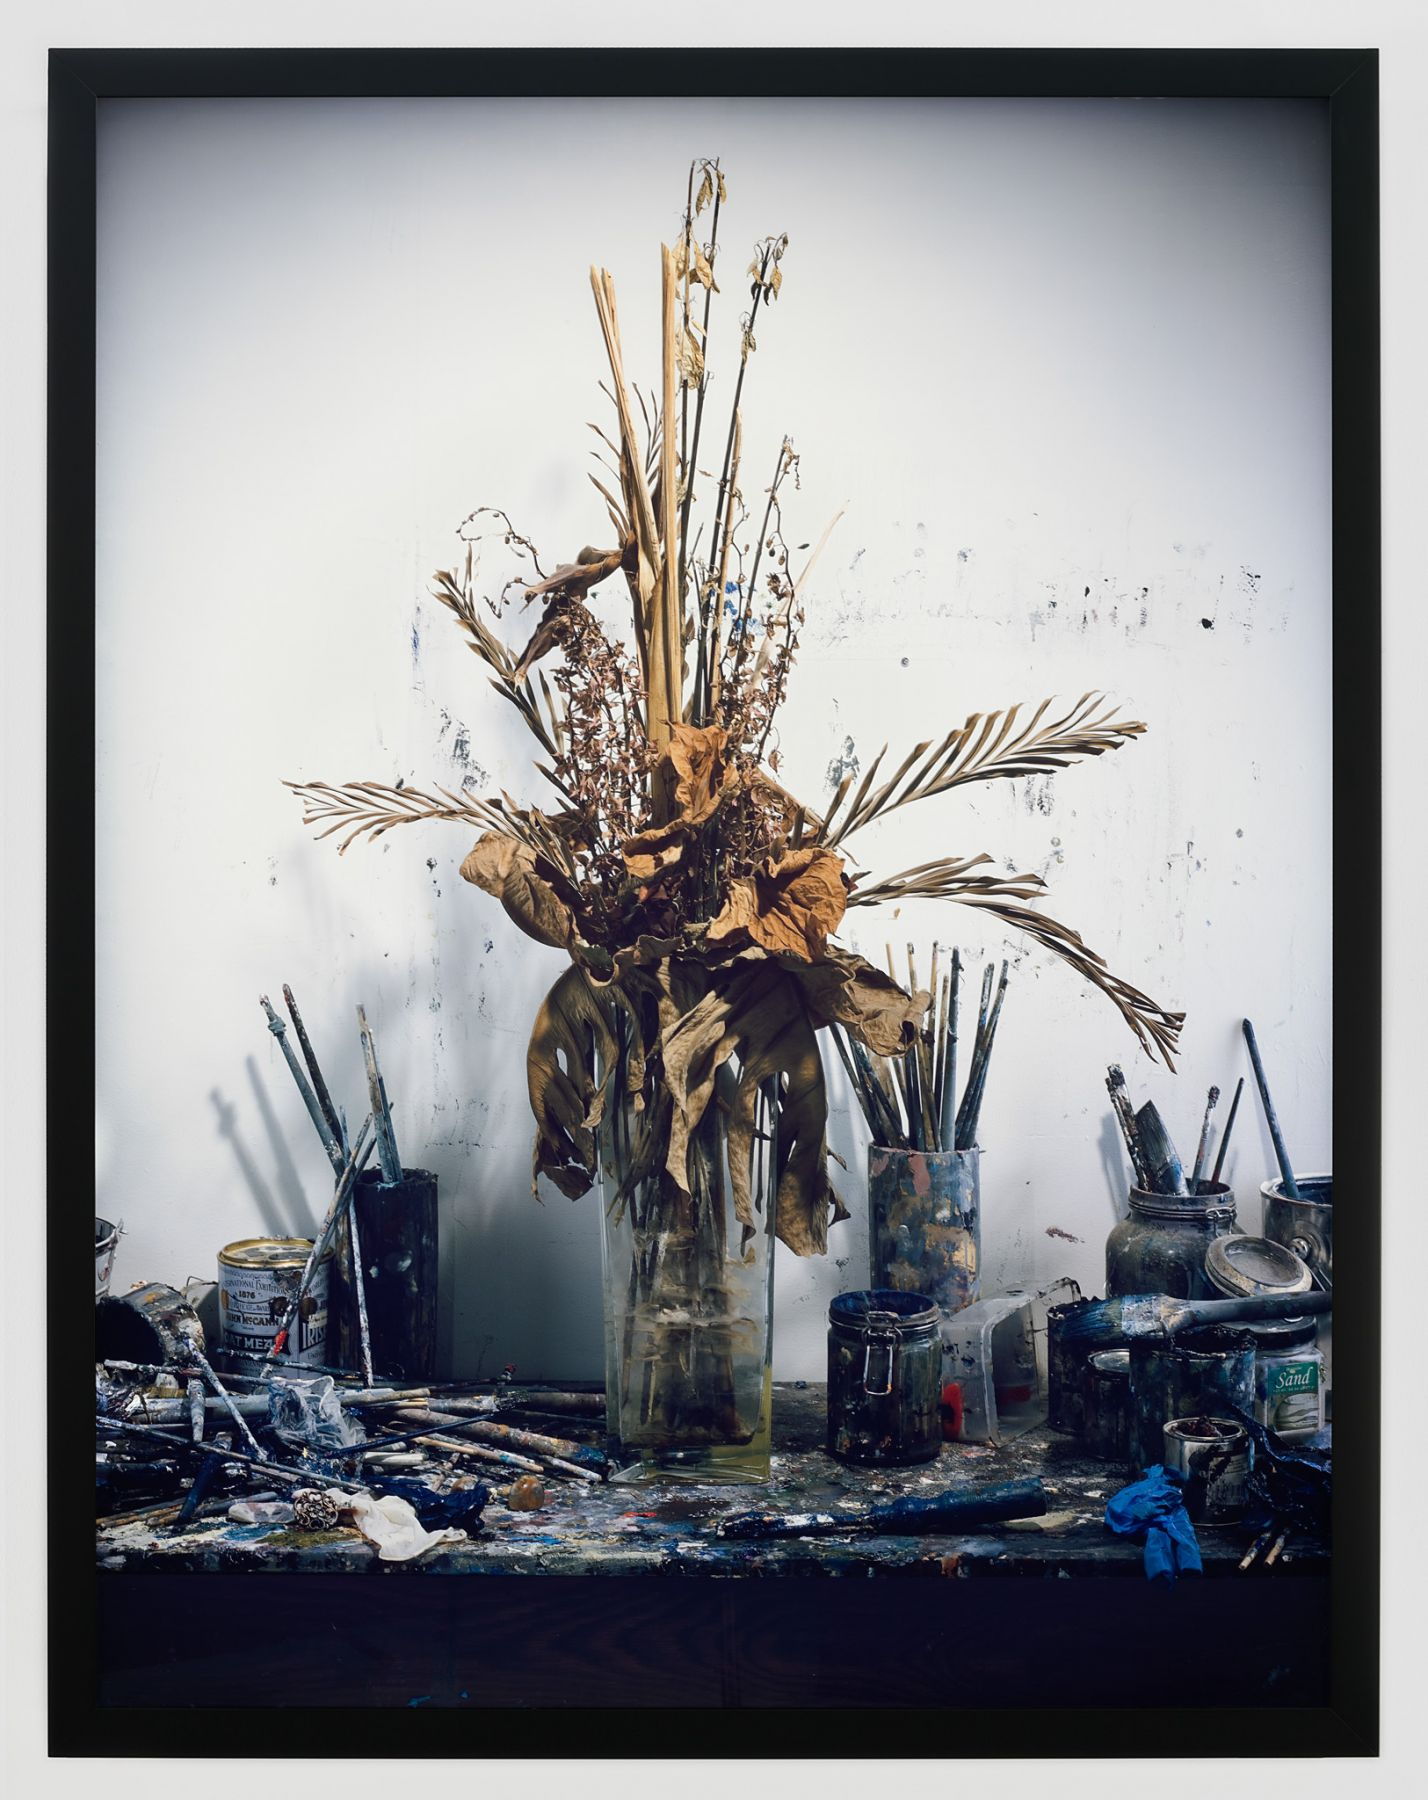 Rodney Graham, Dead Flowers in My Studio, 2009